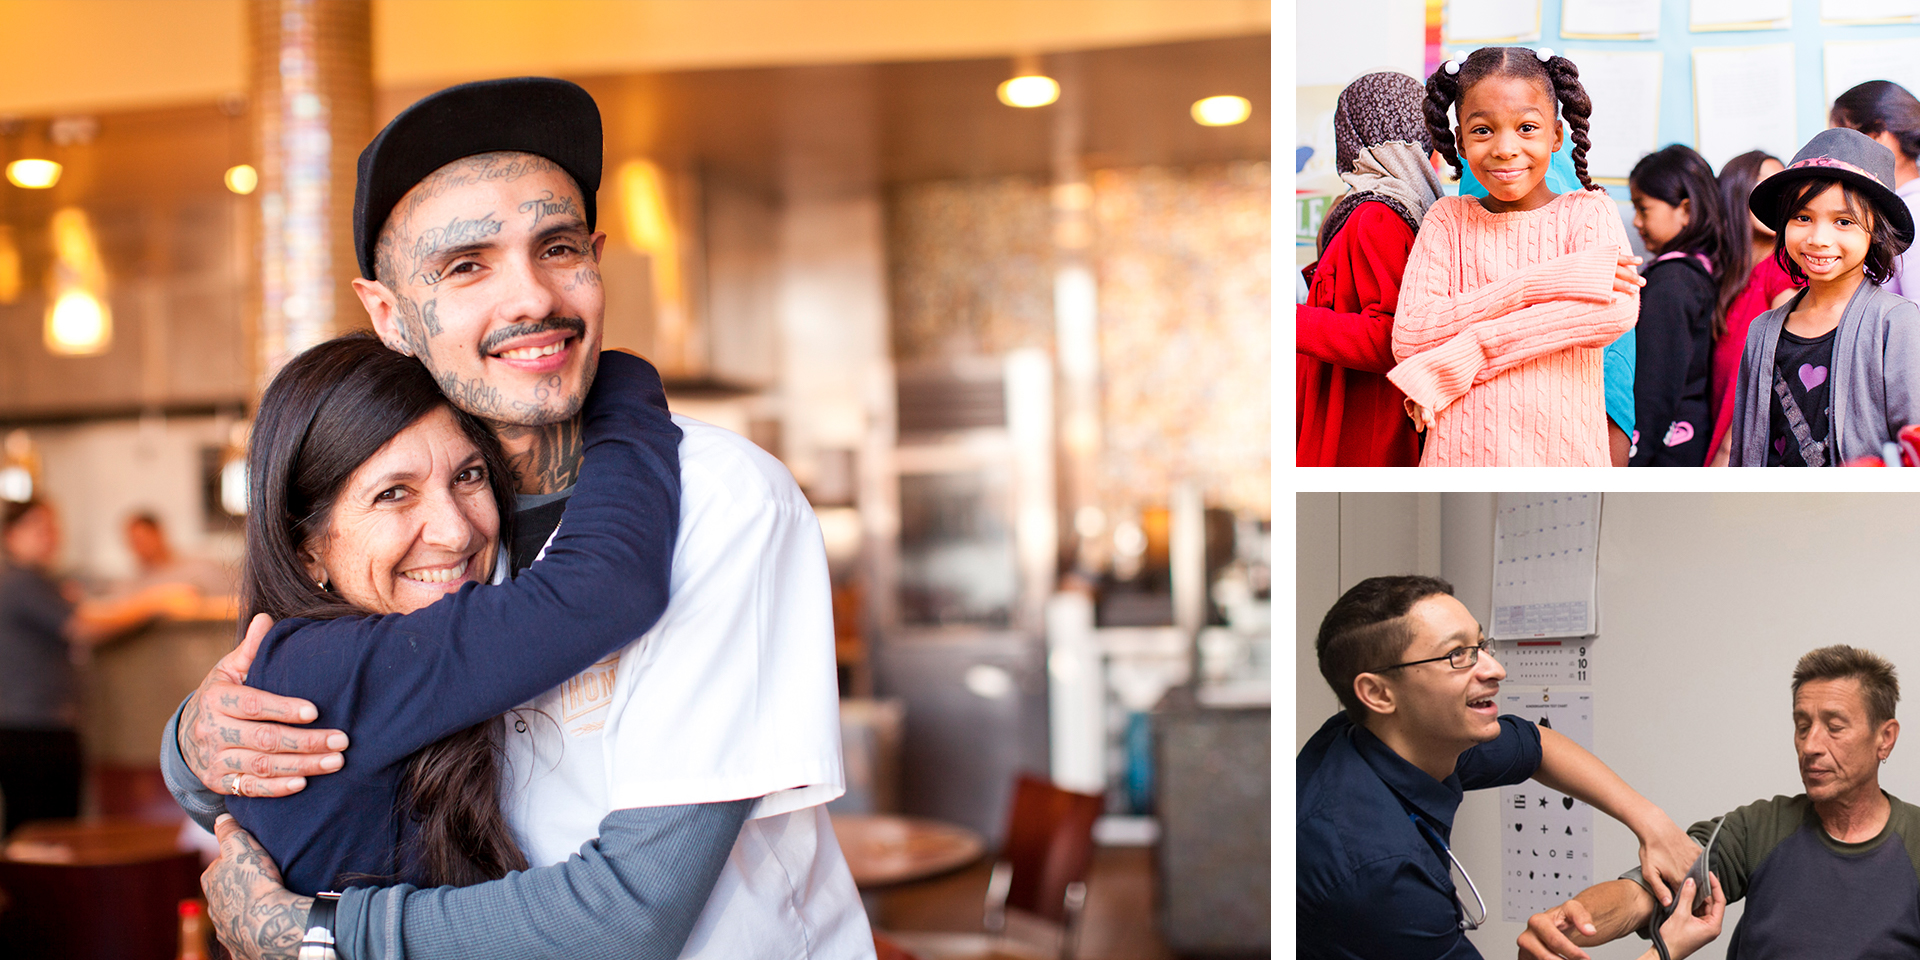 Professor embraces former gang member. UCLA Community School students smile. Doctor treats homeless man.